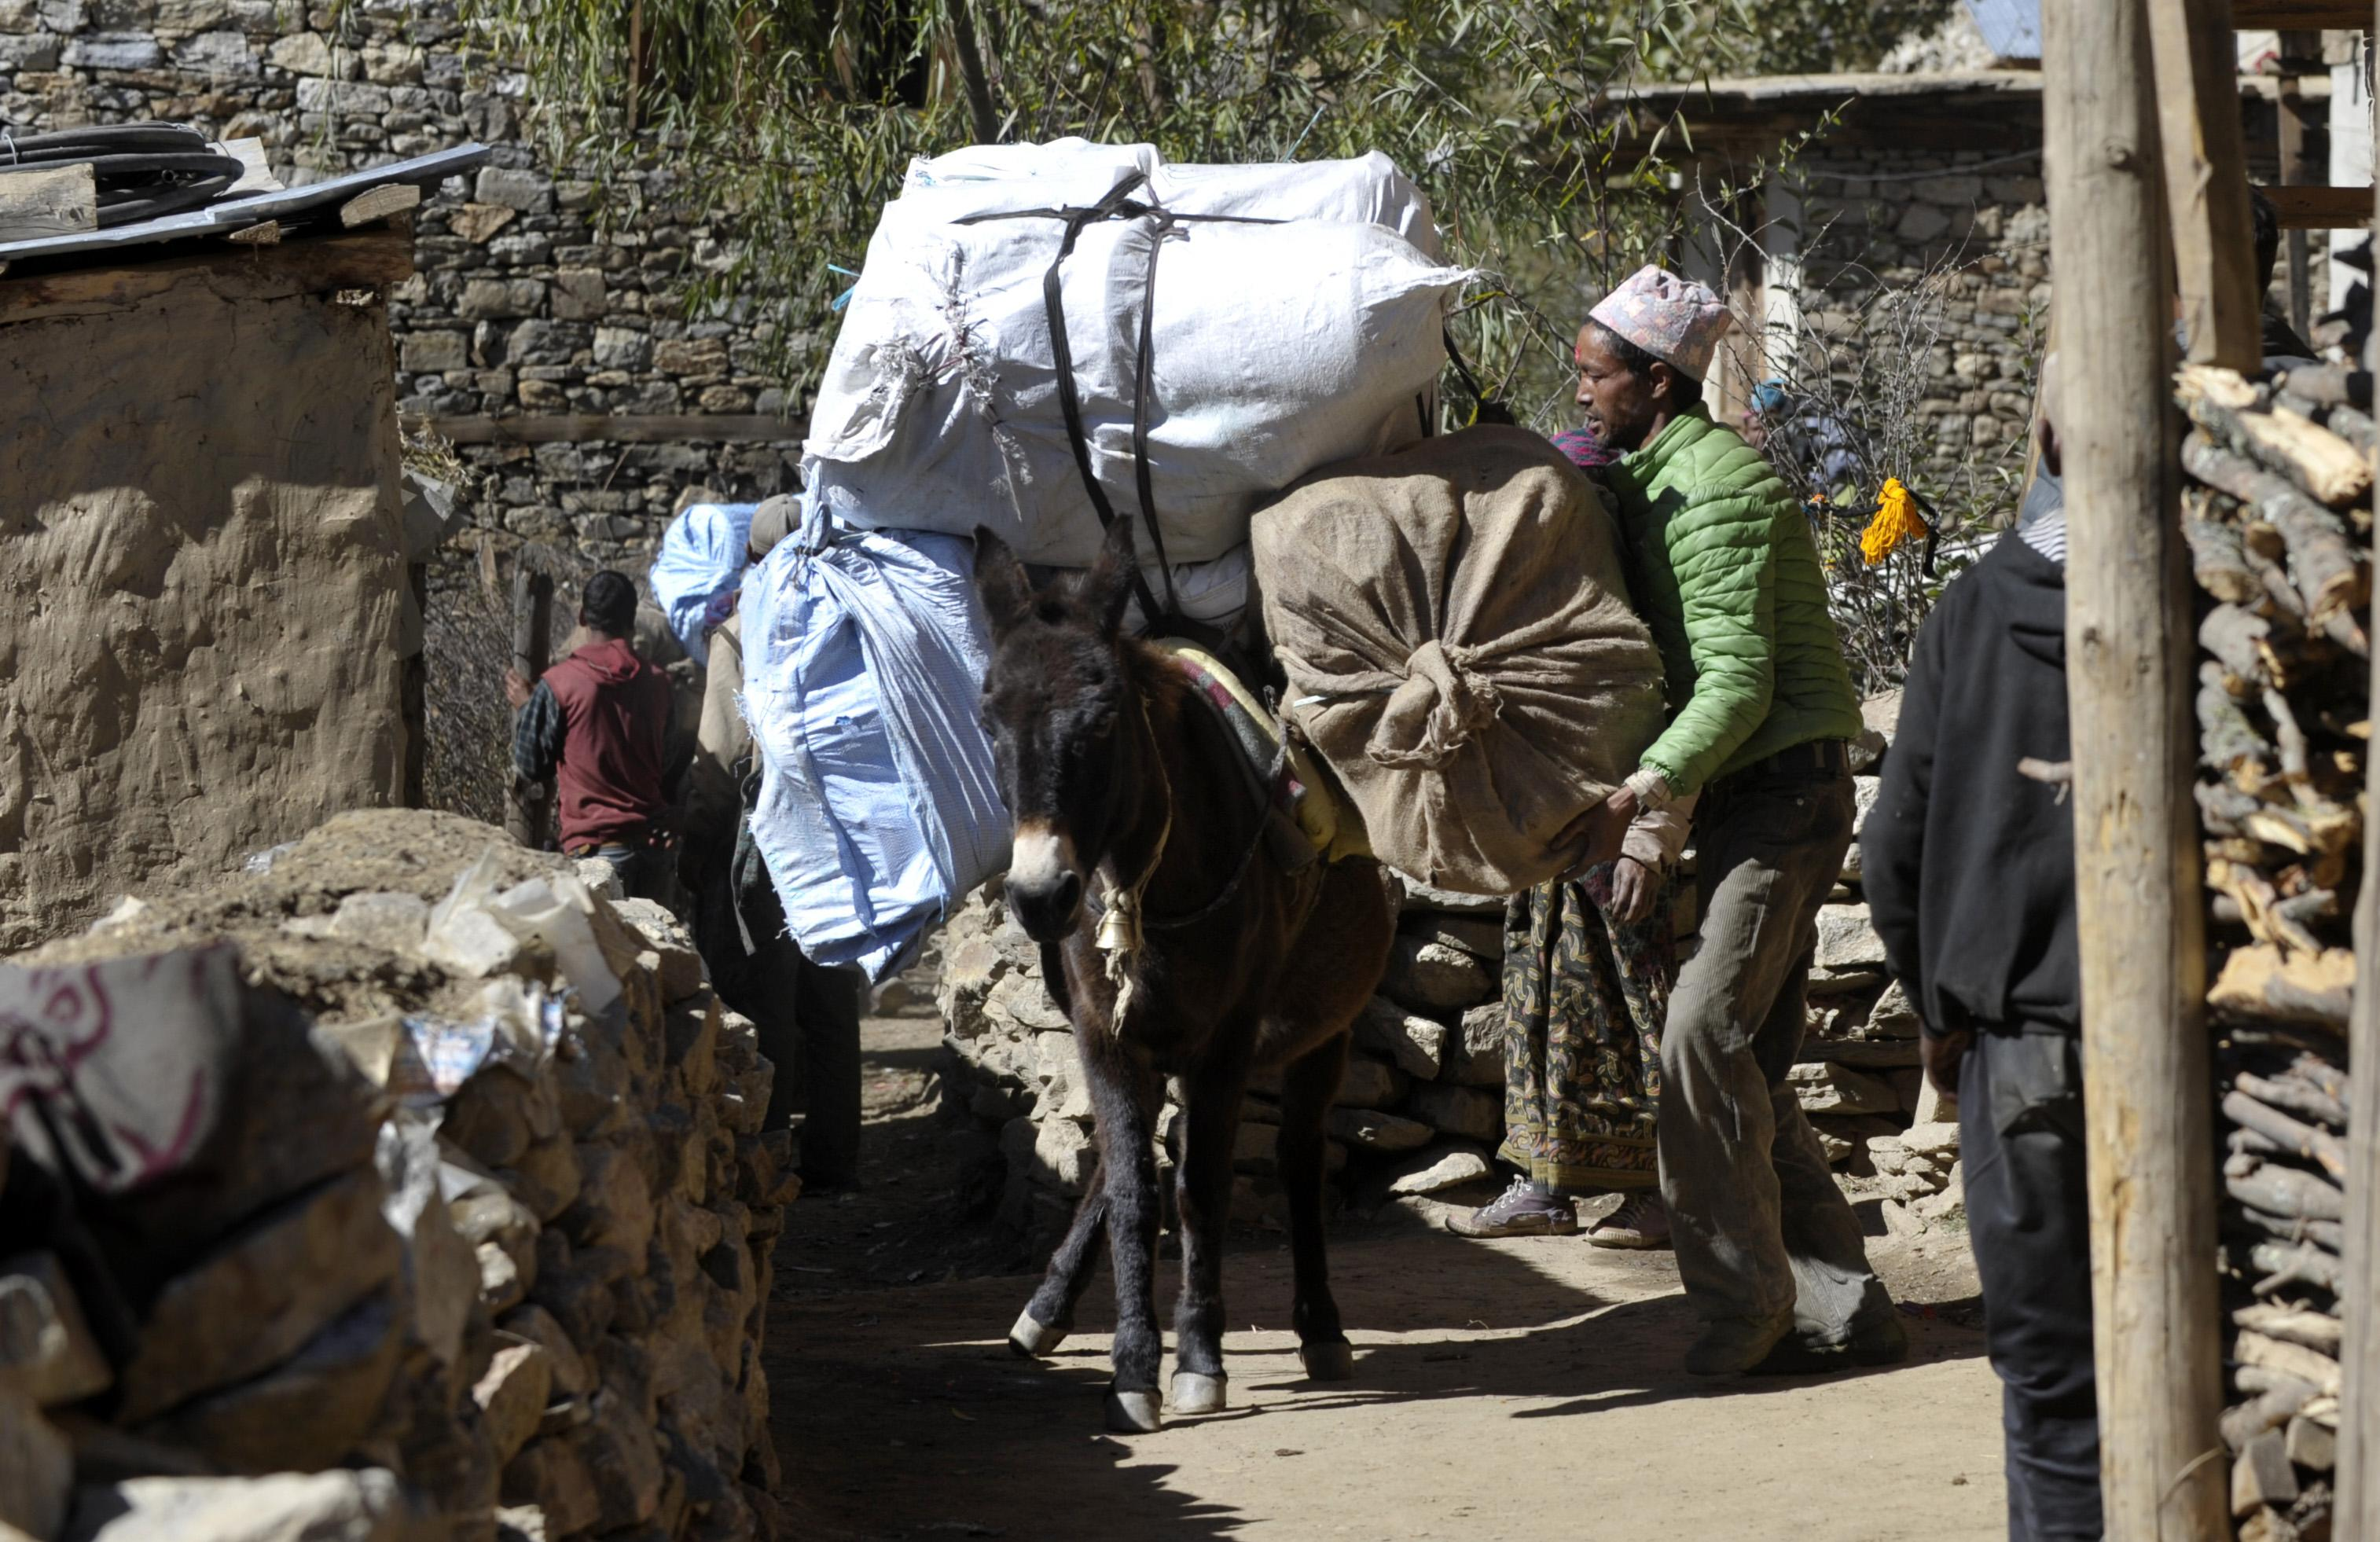 End of the road for Nepal's traditional Himalayan 'caravans'